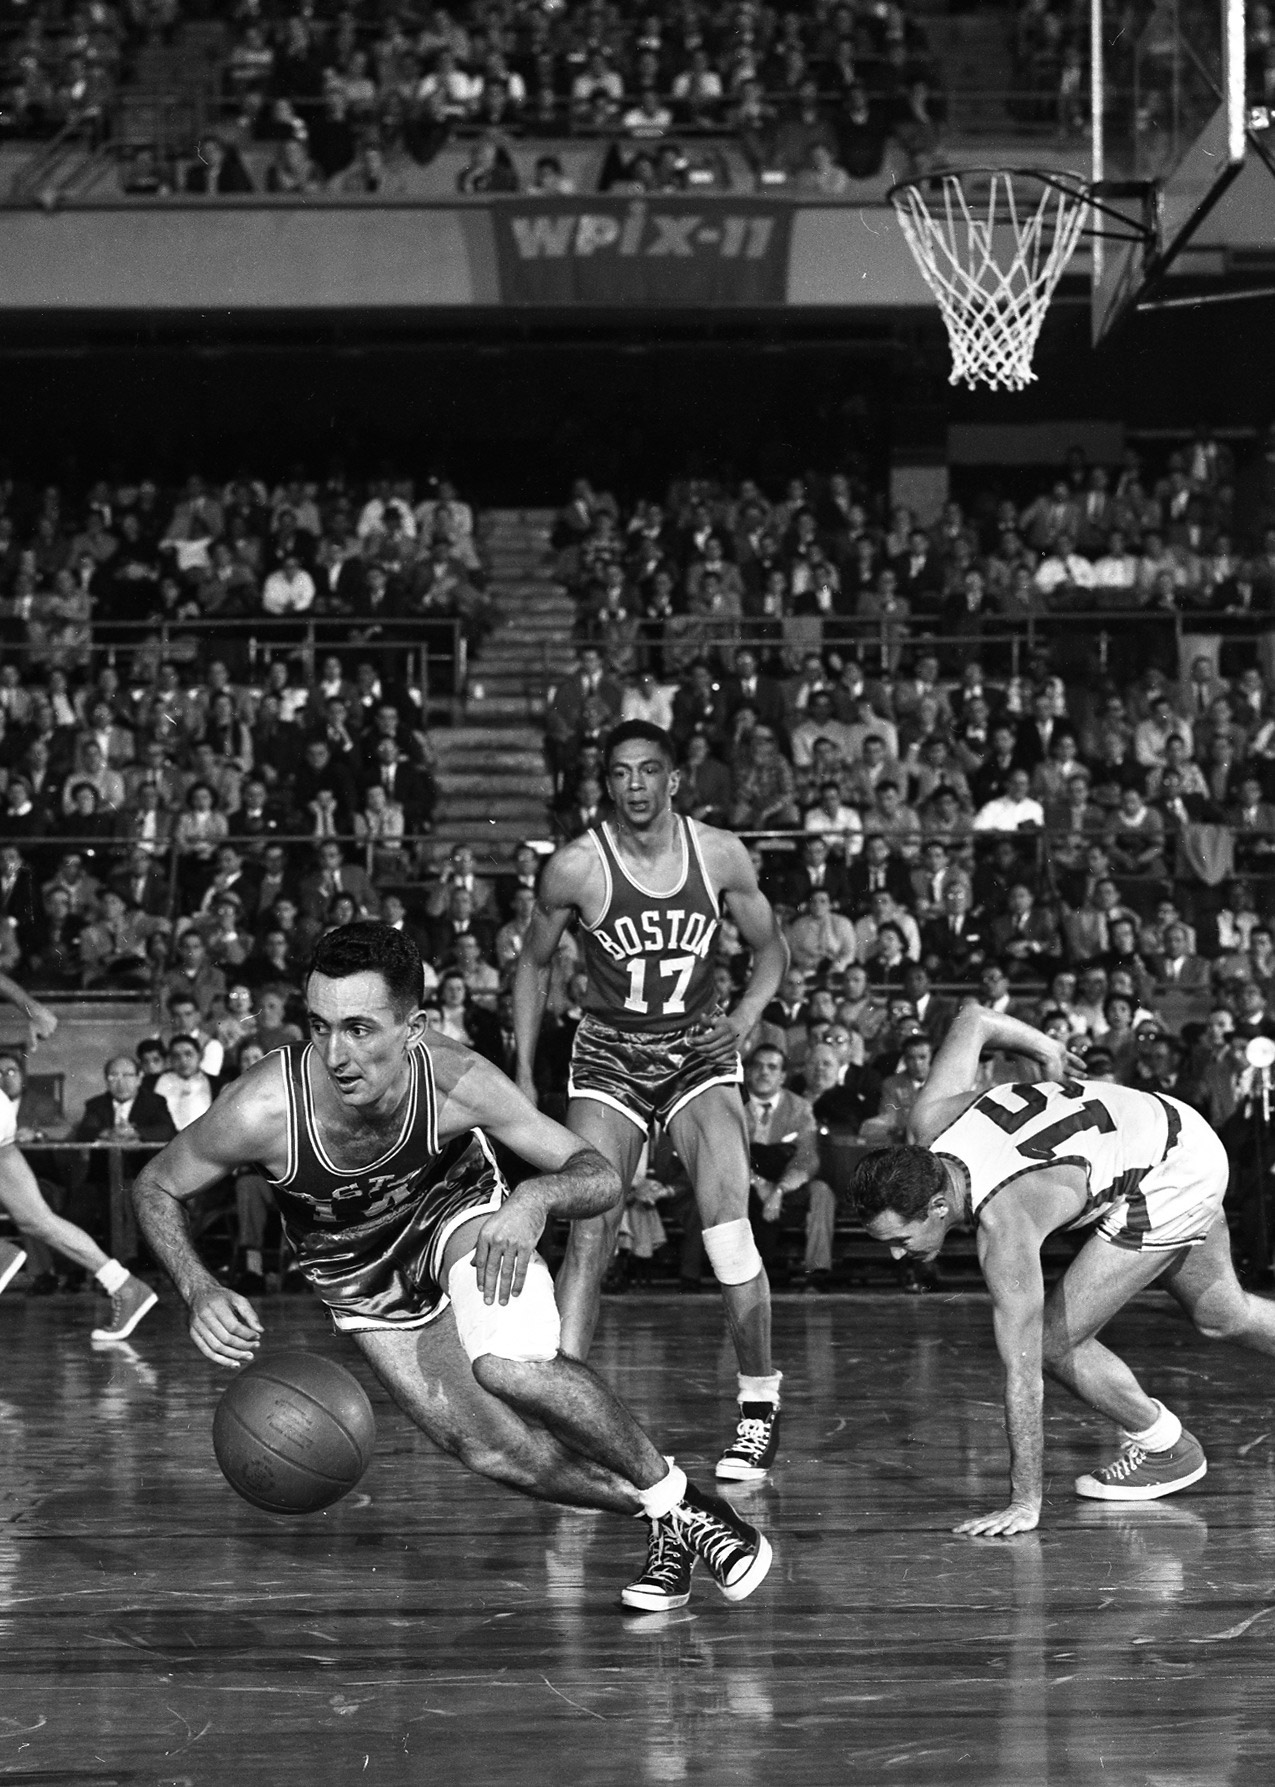 Dick McGuire (right) drops to knee as Boston's Bob Cousy outslicks him during fourth period action at Garden. Alan Barksdale (center) seems awed by teammate Cousy's daring, but things evened up for Knicks as they pulled away to 88-83 victory. Circa 1955.